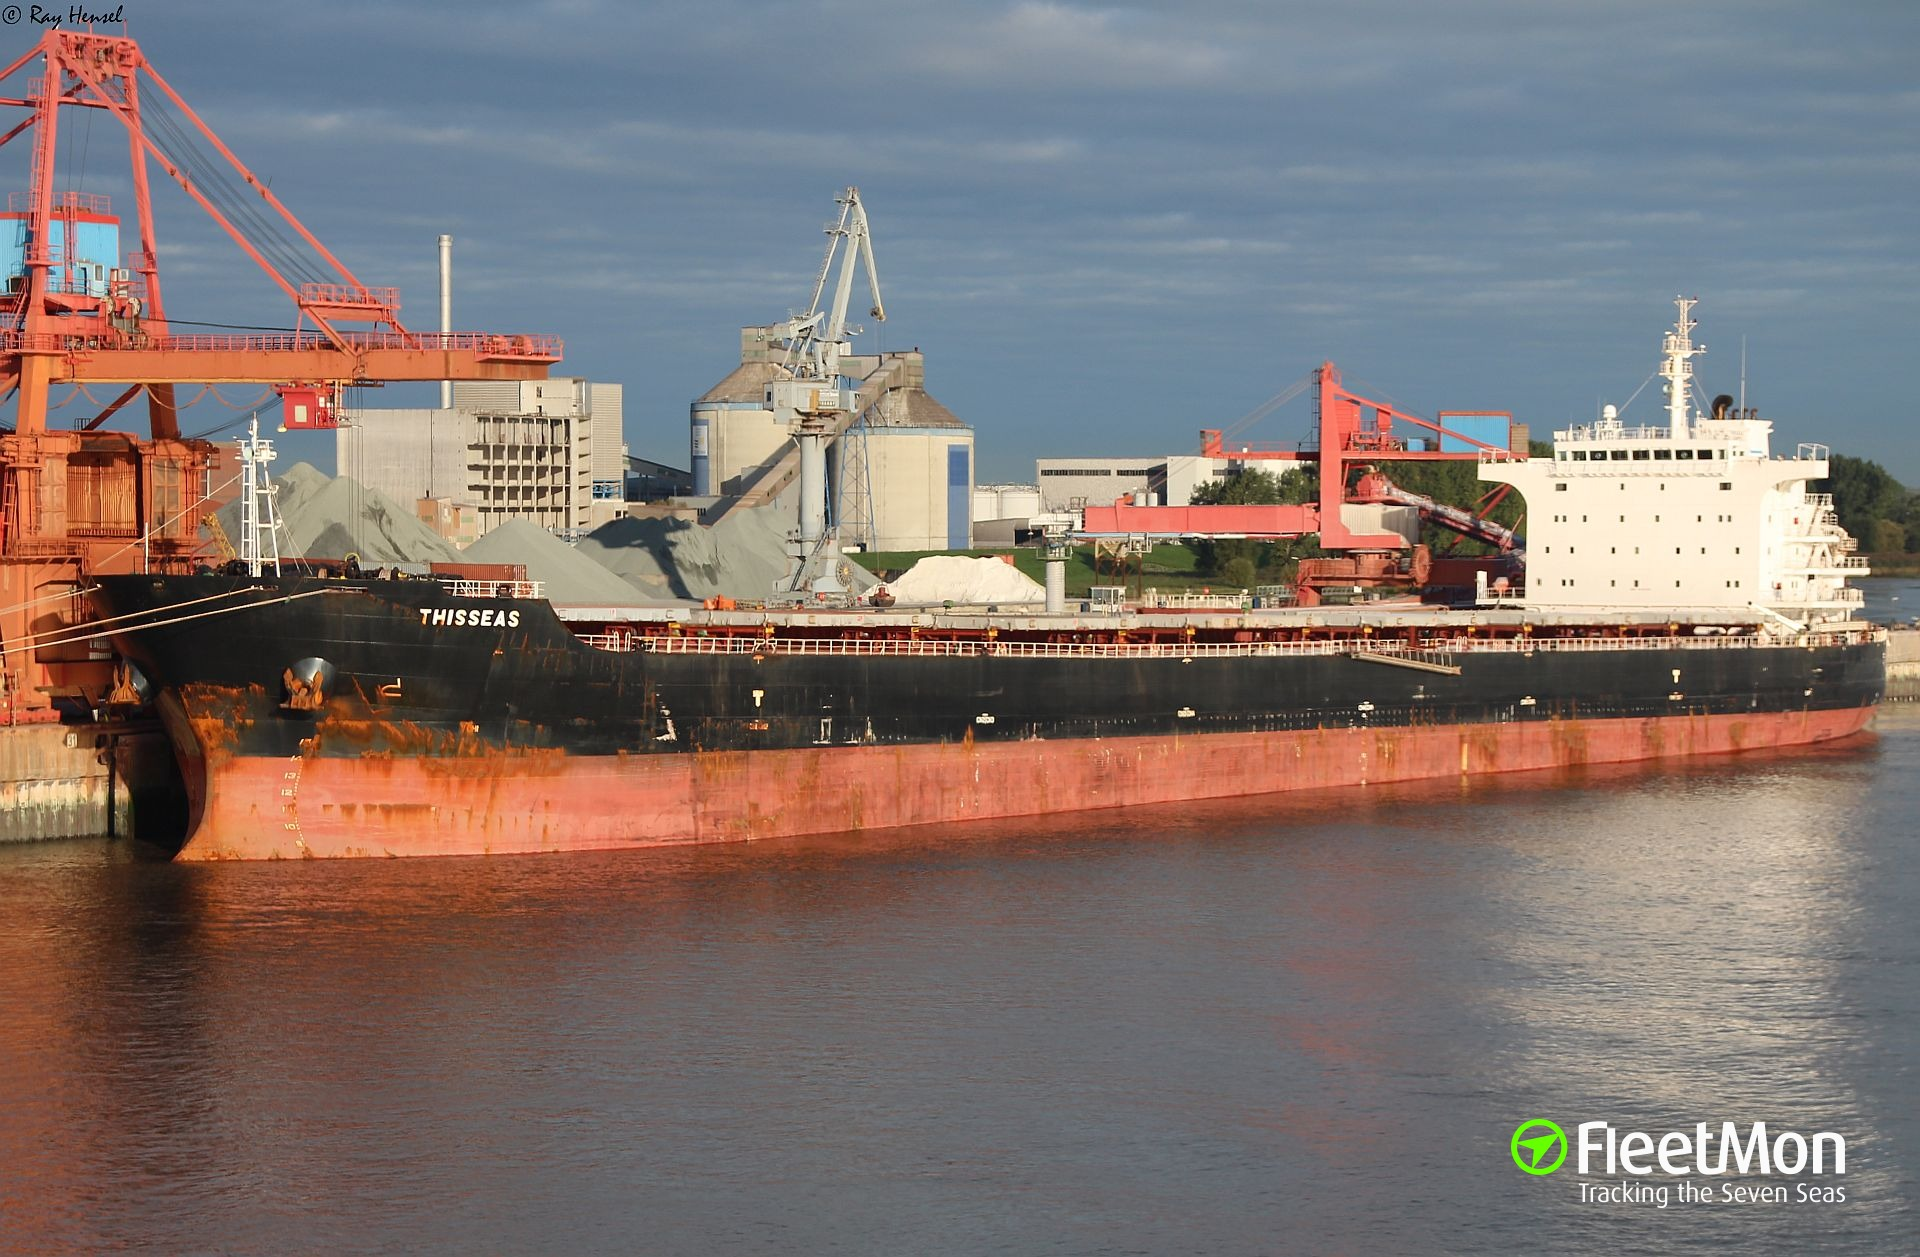 THESSEAS ordered to sail to Brest, pollution suspect